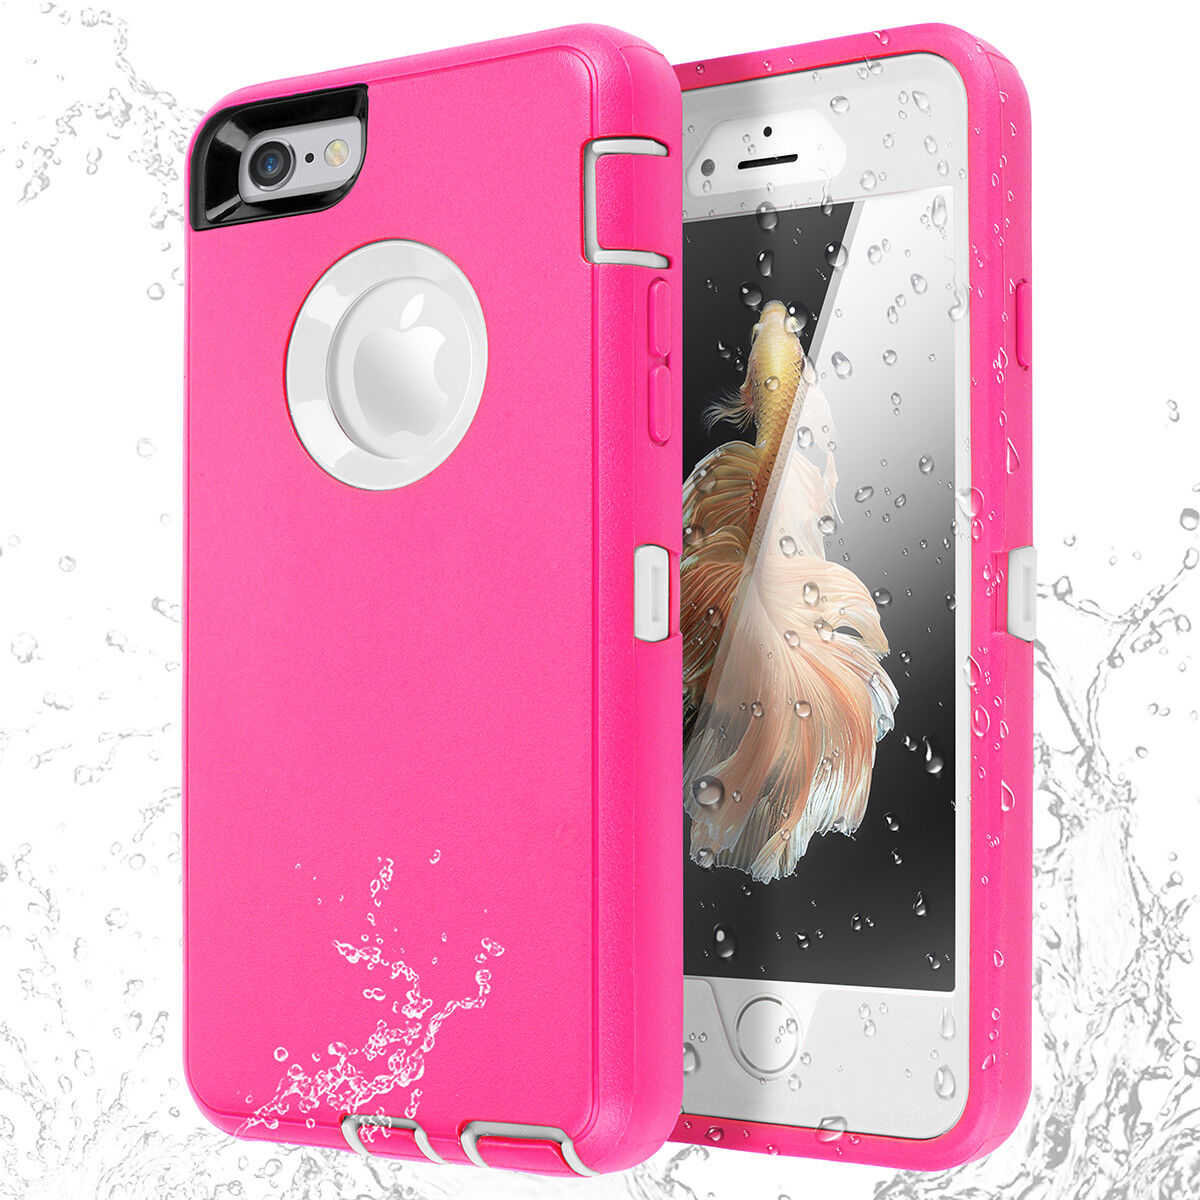 Full Body Protective Hybrid Shockproof Case Cover For iPhone 8 7 6s Plus X XS SE